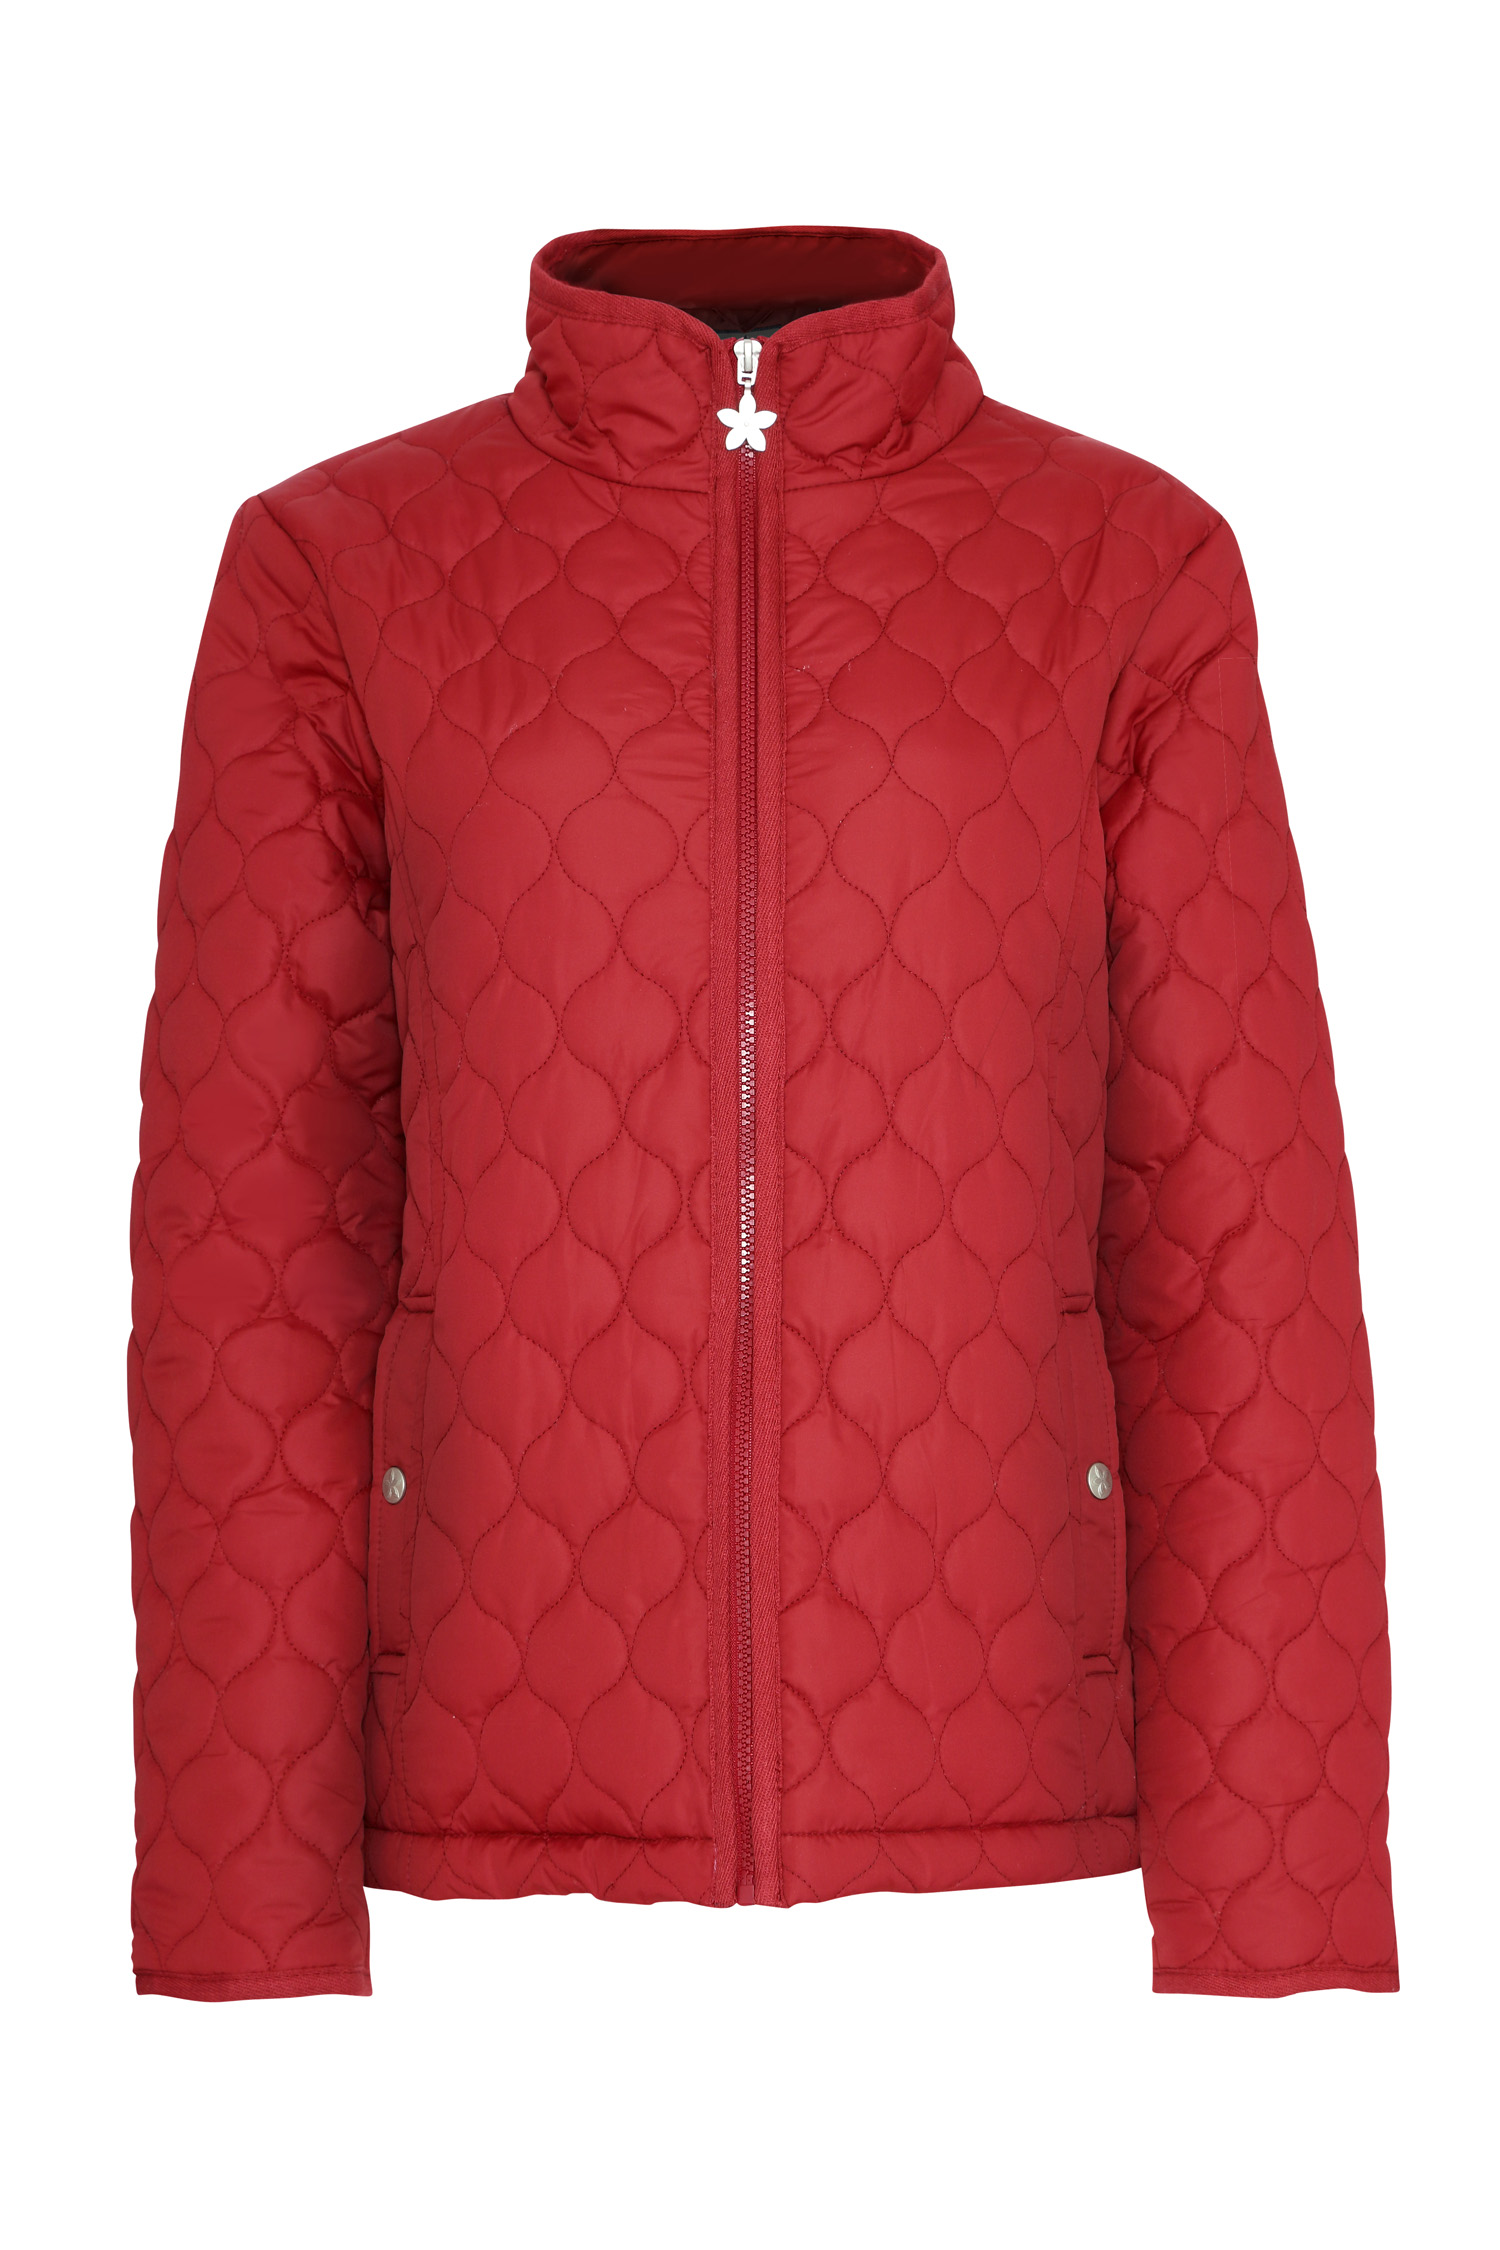 Champion Womens Abingdon Country Estate Lightly Quilted Jacket Uk